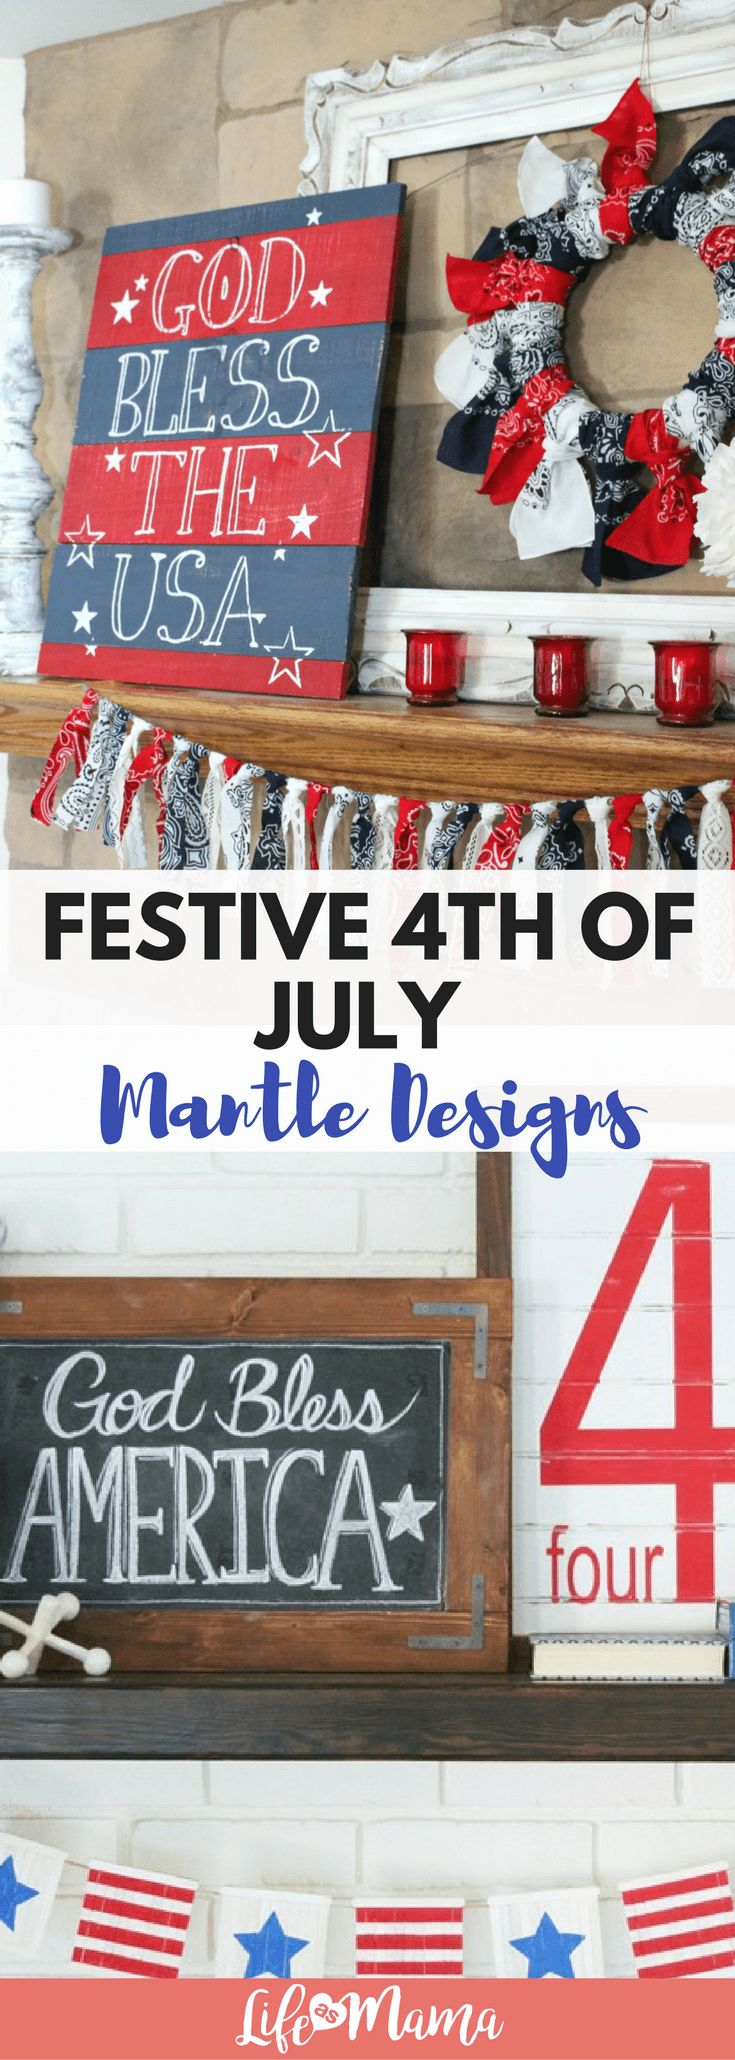 Check out this festive list of 4th of July mantle designs and get ready to celebrate Independence Day!